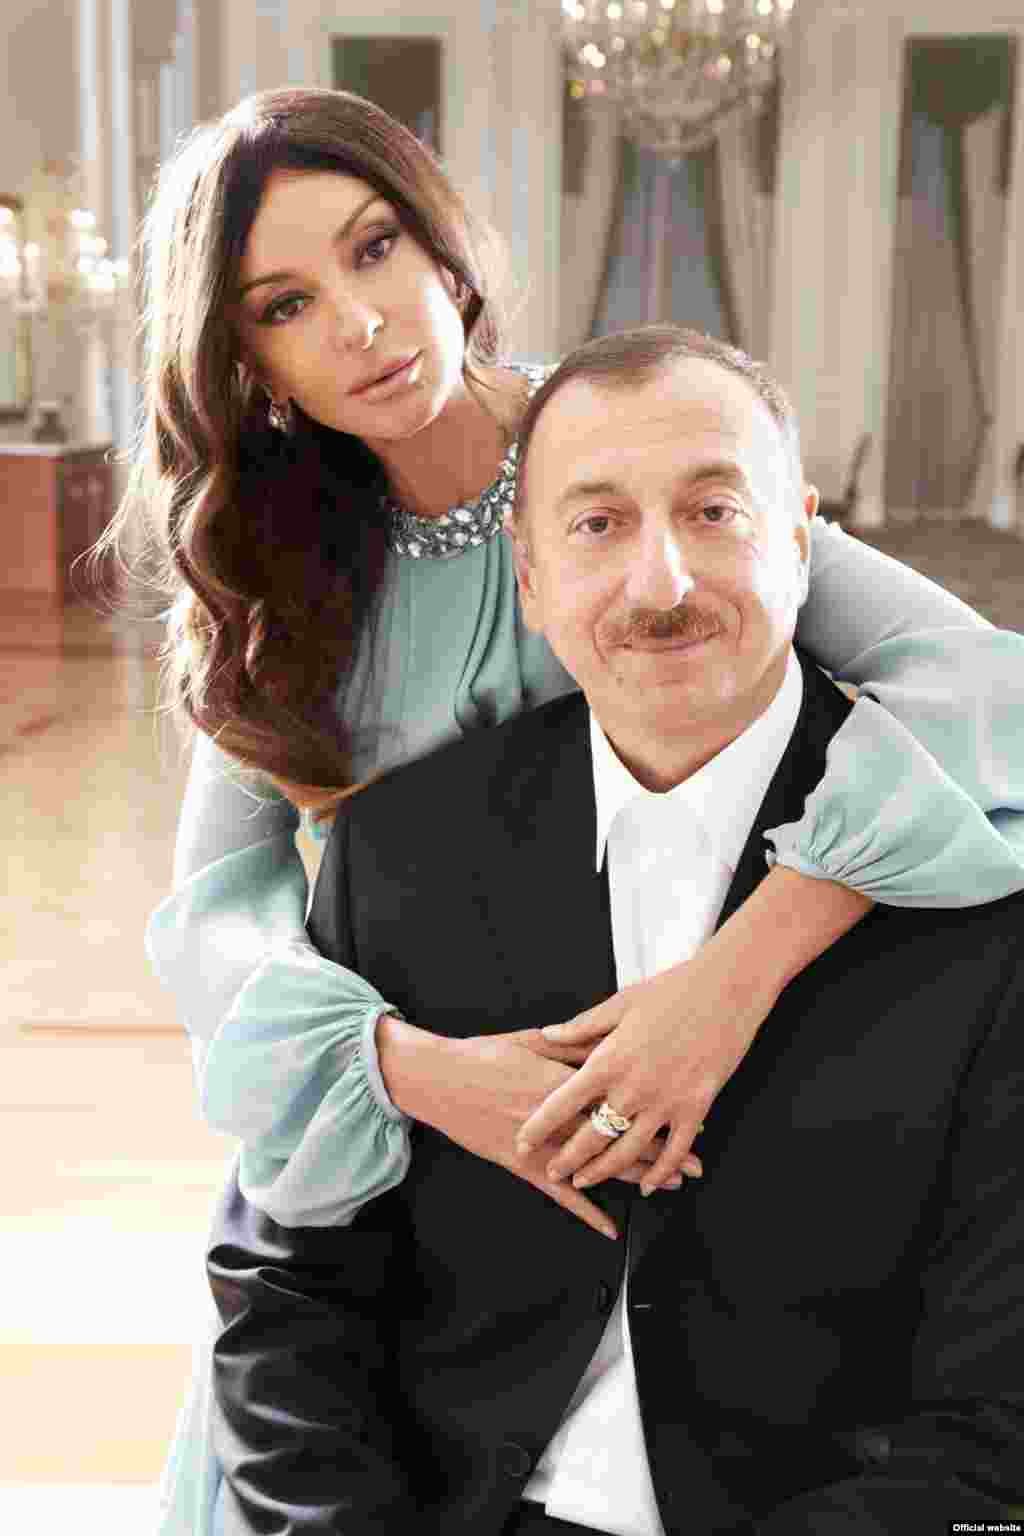 An offical handout photo of President Ilham Aliyev with his wife, Mehriban Aliyeva